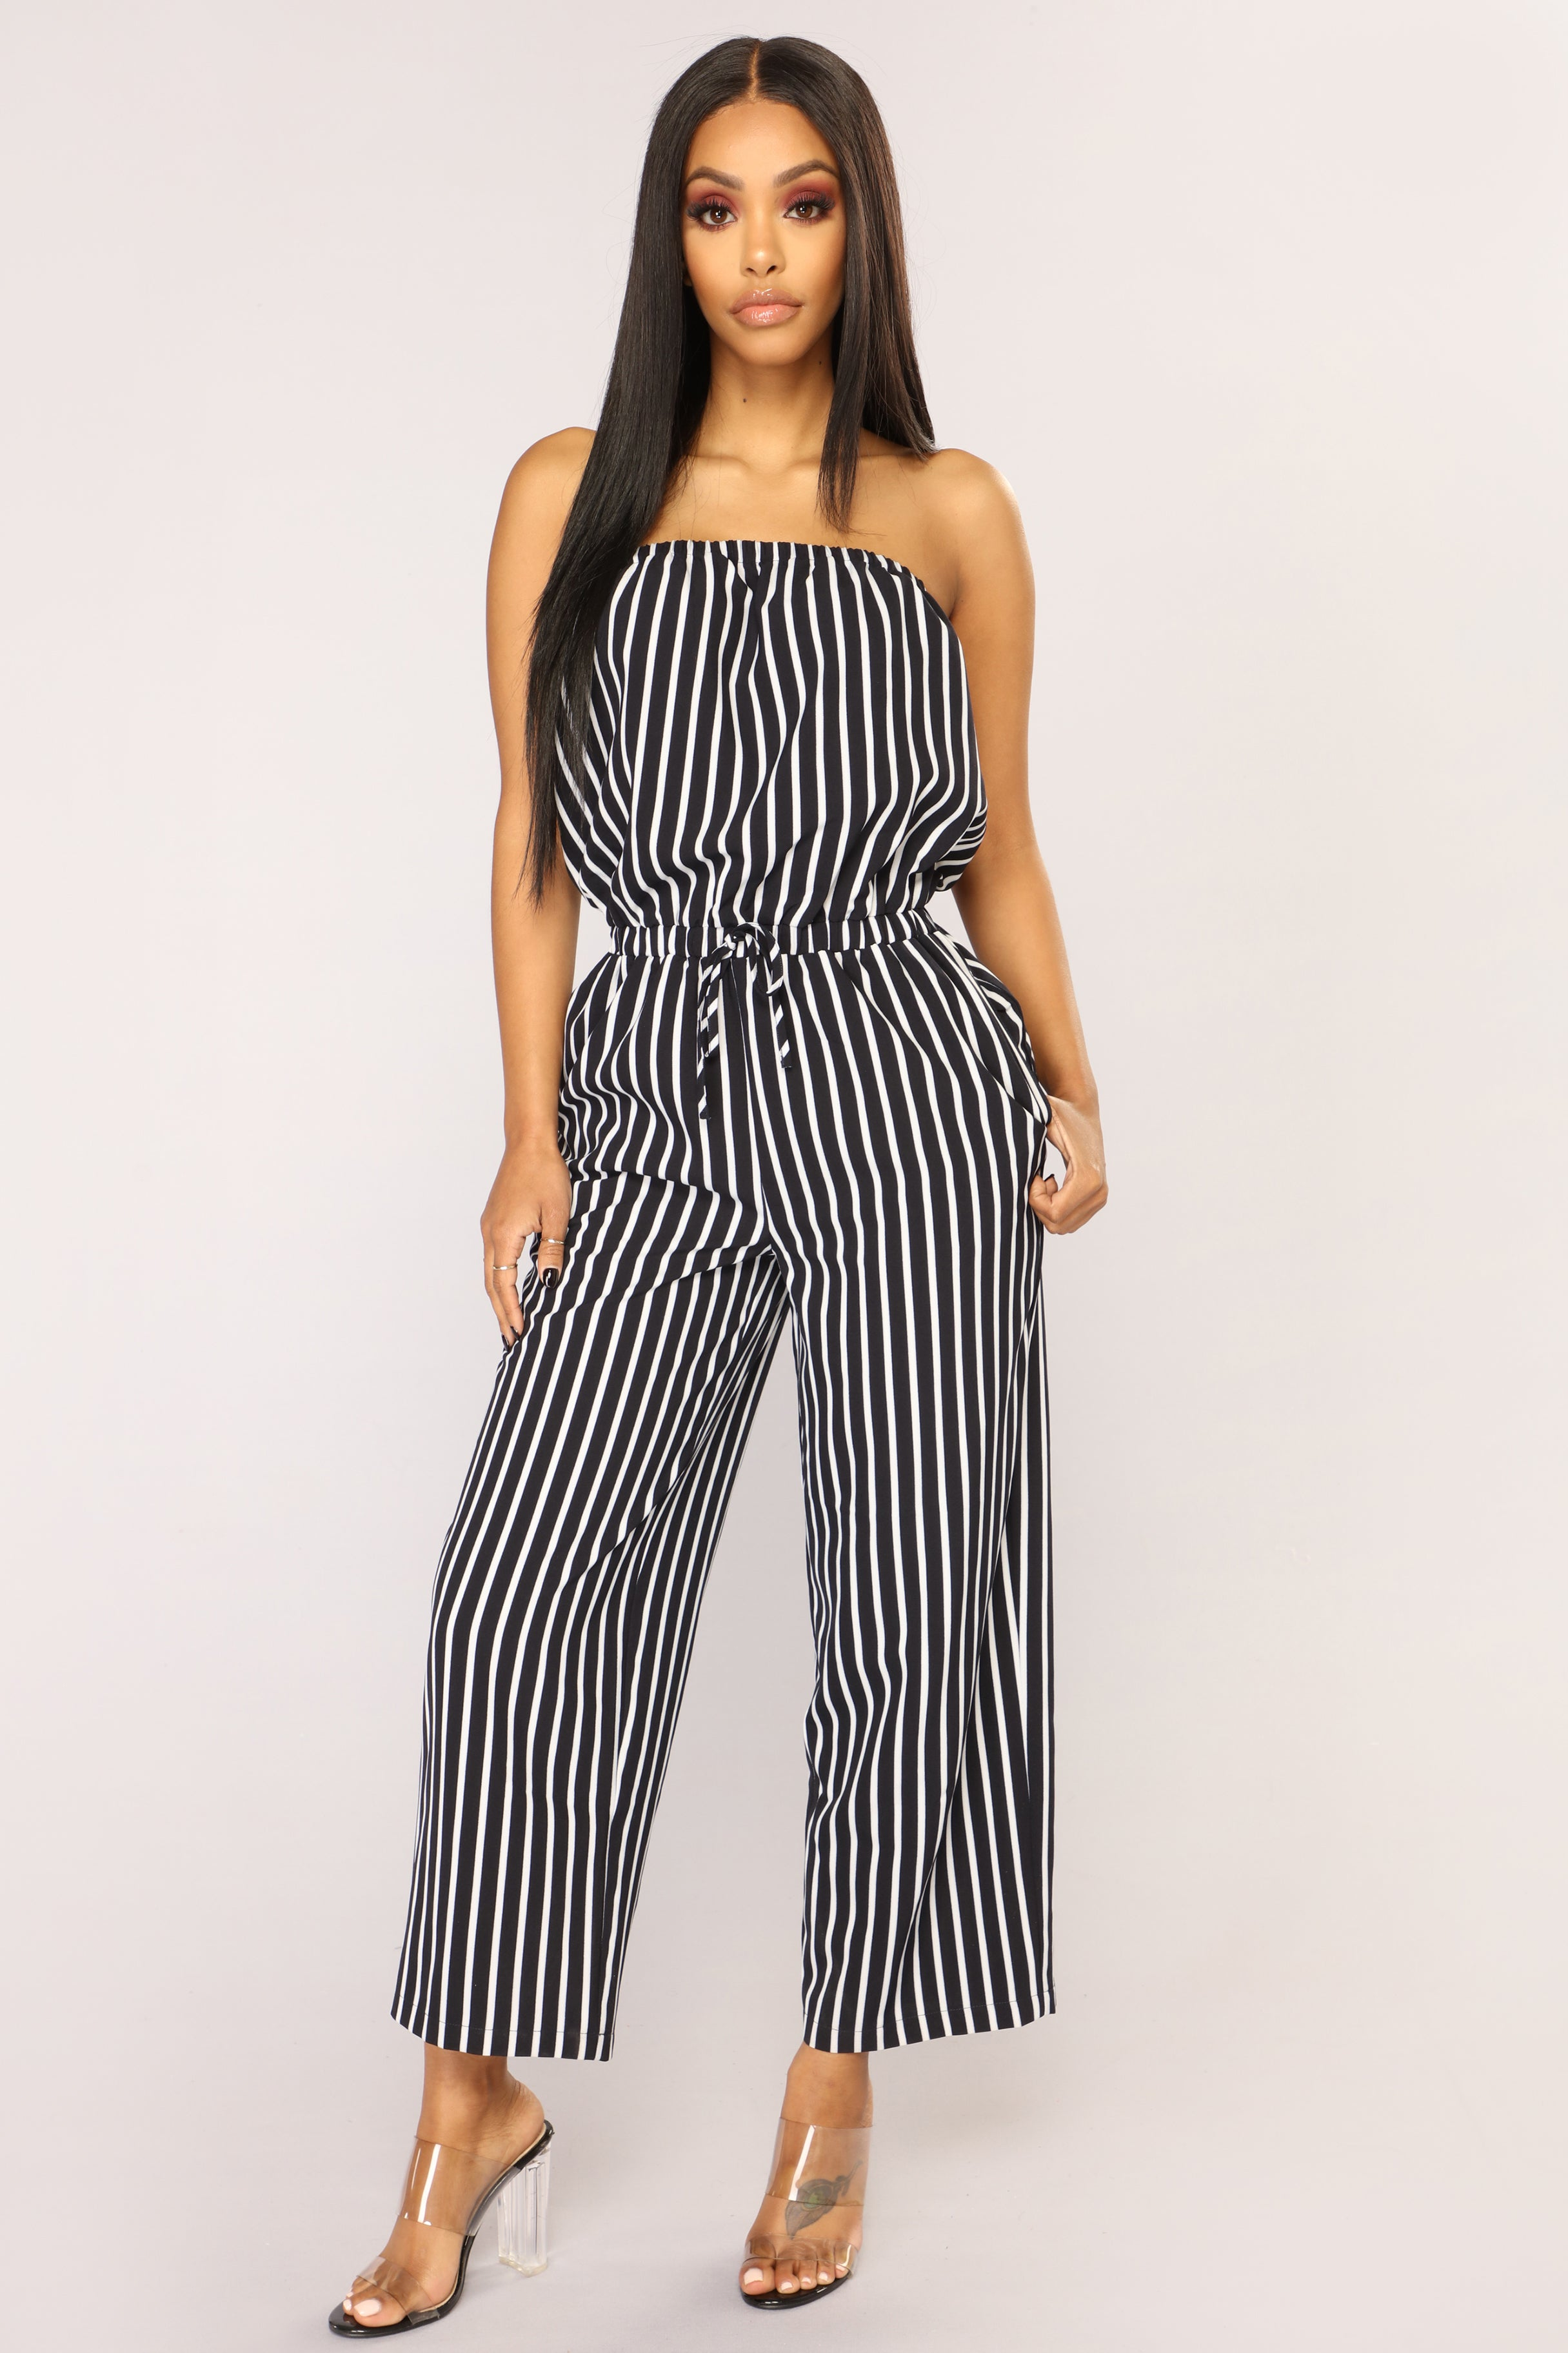 bd6f7294d37 https   www.fashionnova.com products made-you-look-ponte-skirt ...